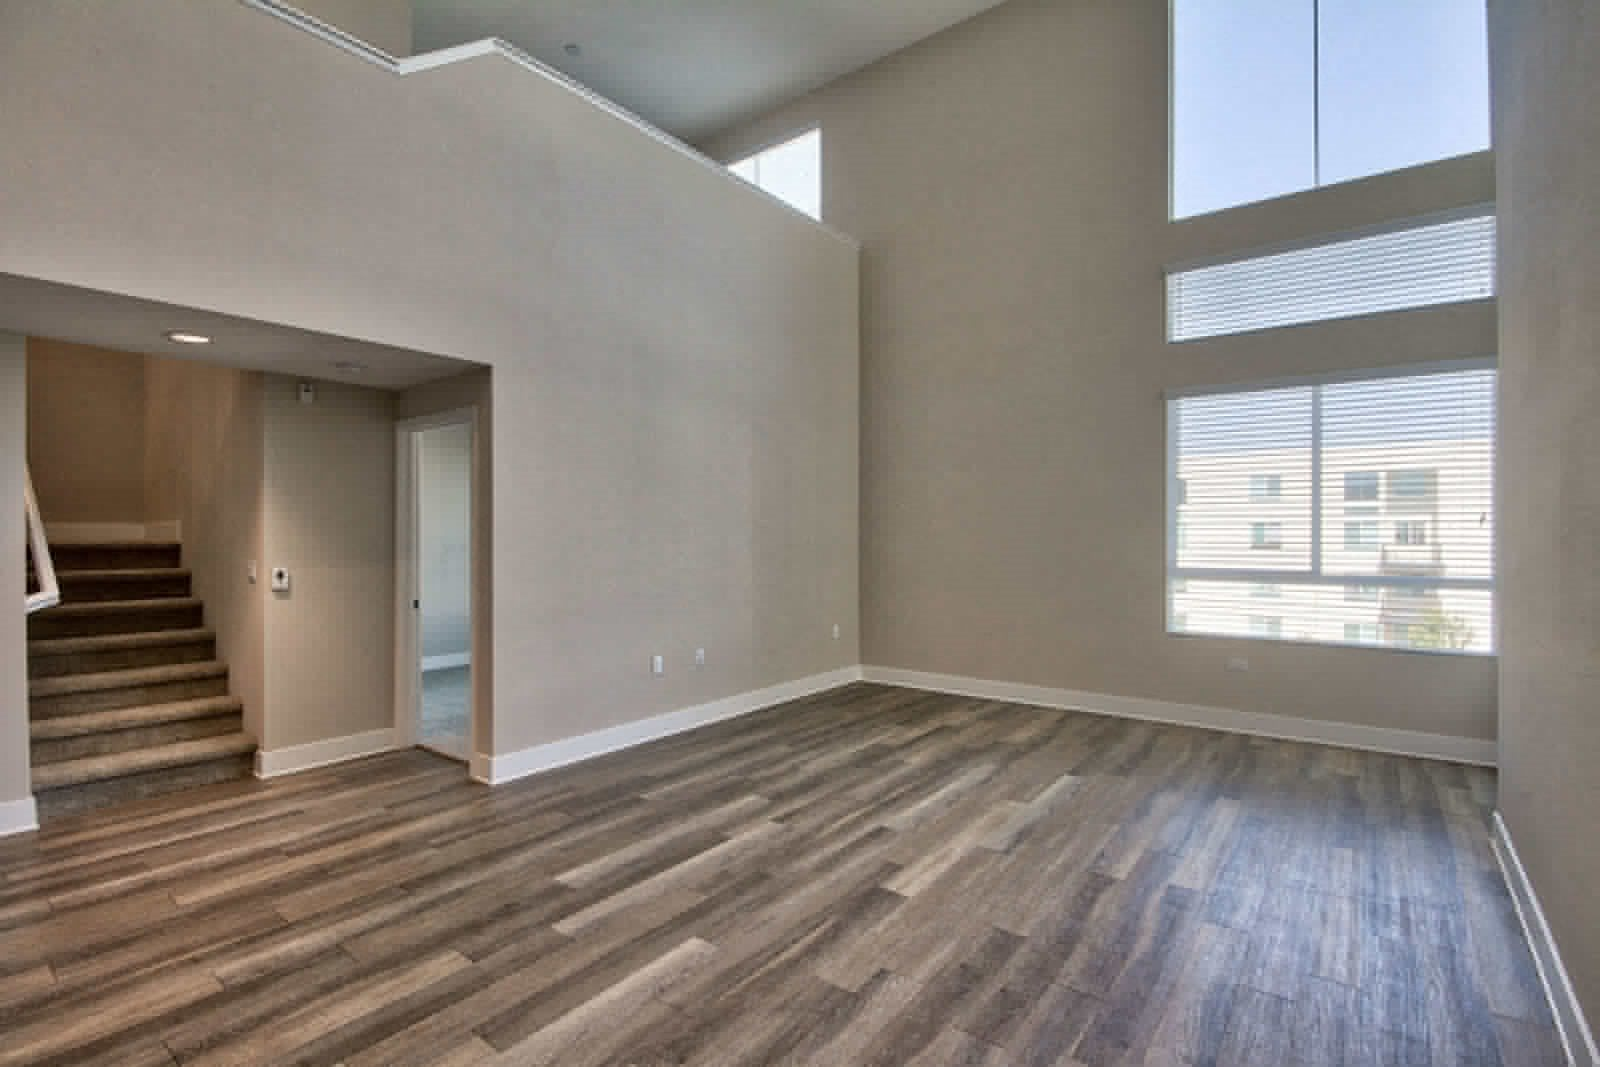 Townhome Units with Attached Garage Available at Boardwalk by Windsor, Huntington Beach, CA